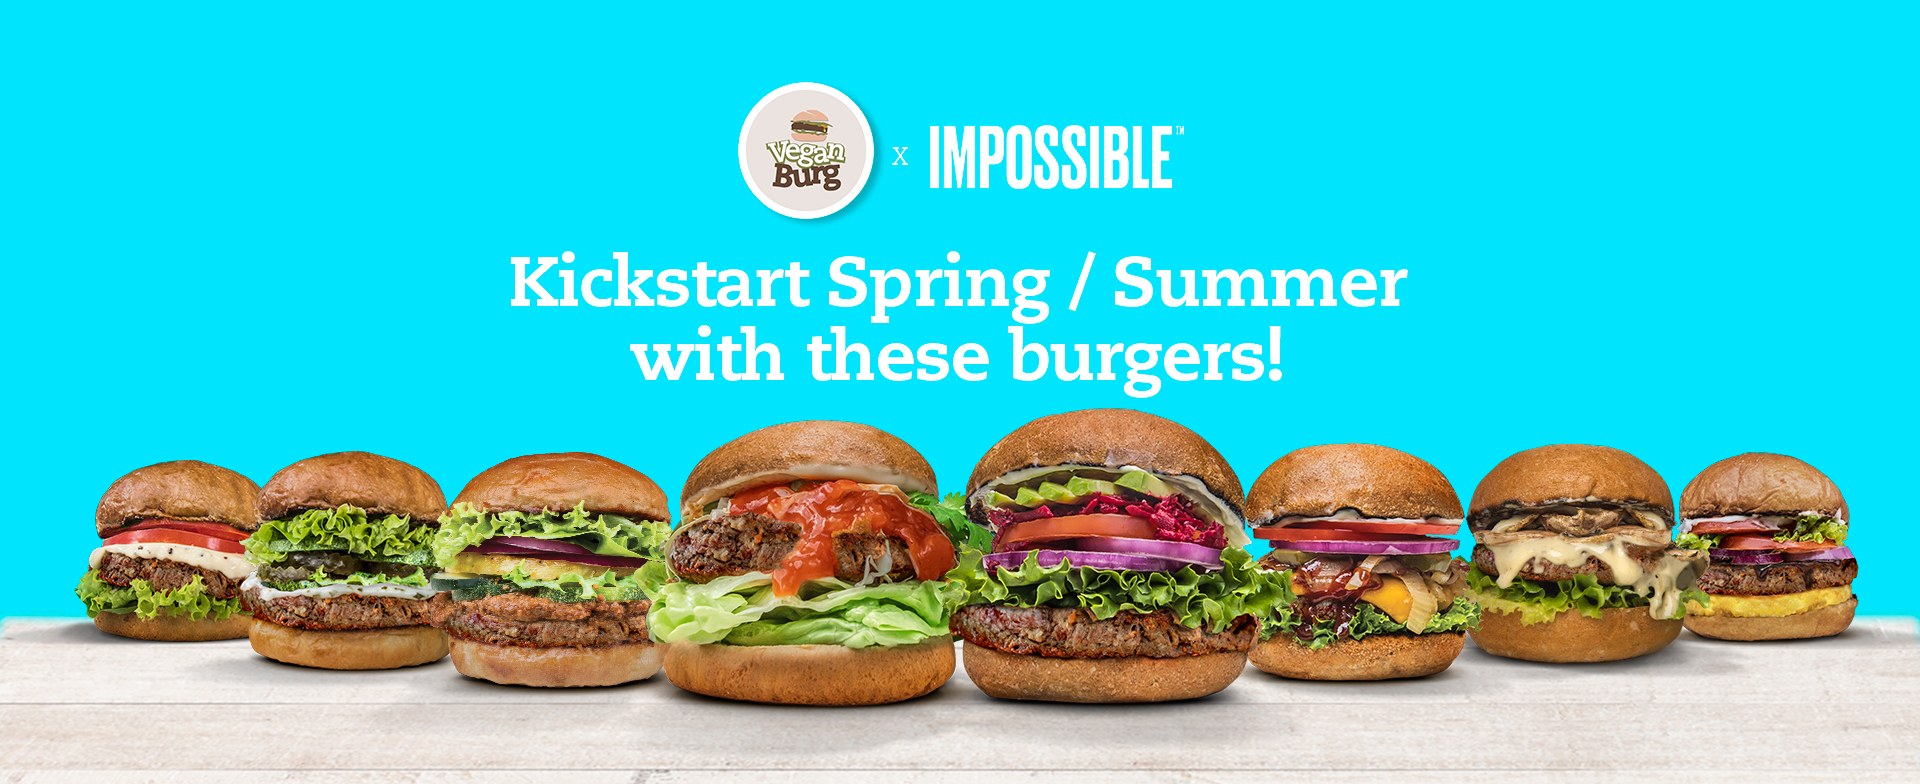 Impossible-Burger_banner03_FINAL (1).jpg